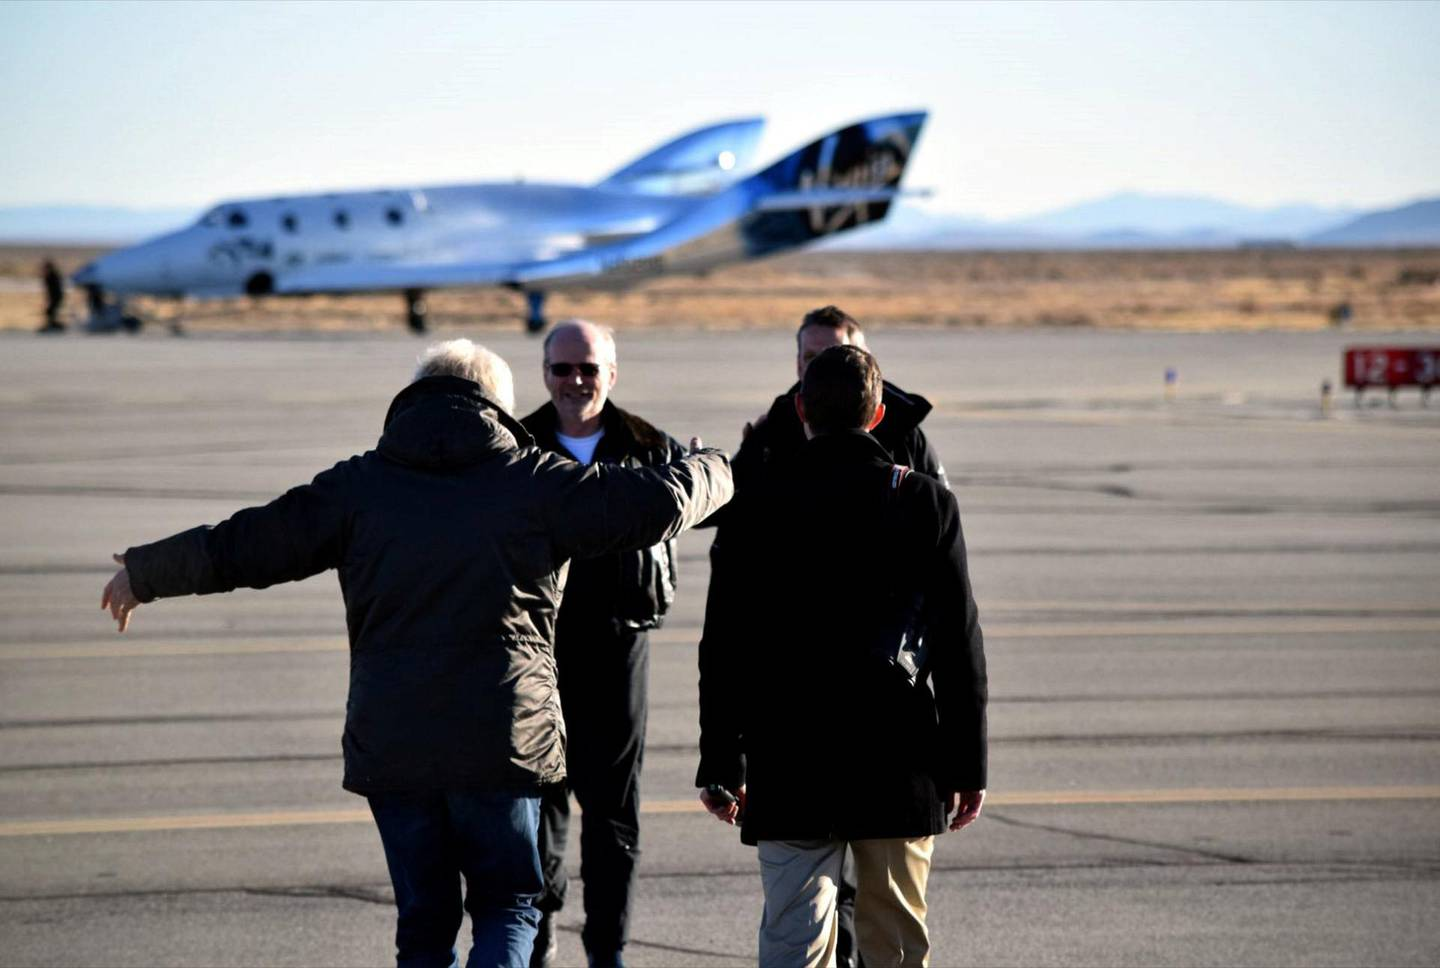 Sir Richard Branson and George Whitesides congratulate Chief Pilot Dave Mackay and Test Pilot Mark Stucky after a successful first glide flight of Virgin Spaceship Unity (VSS Unity) in Mojave Desert on 3rd December 2016.